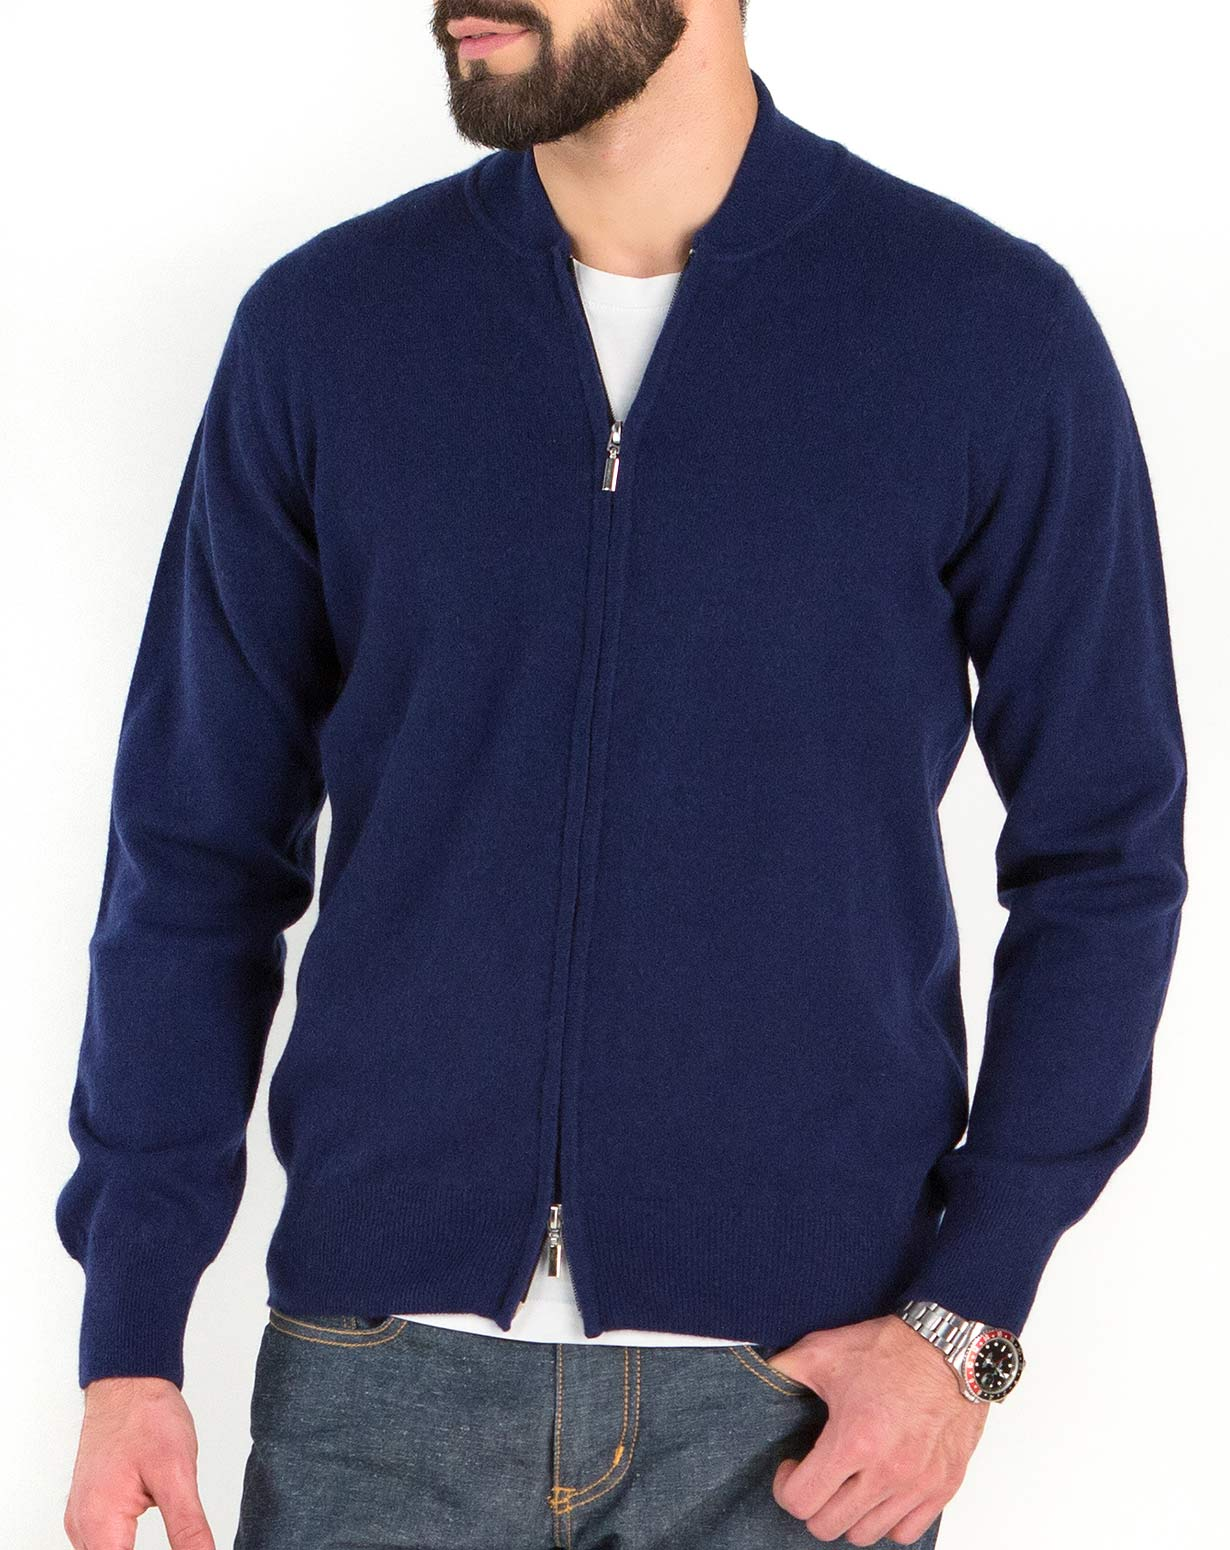 Men's Knitwear: Fine Sweaters and Cardigans | MaisonCashmere